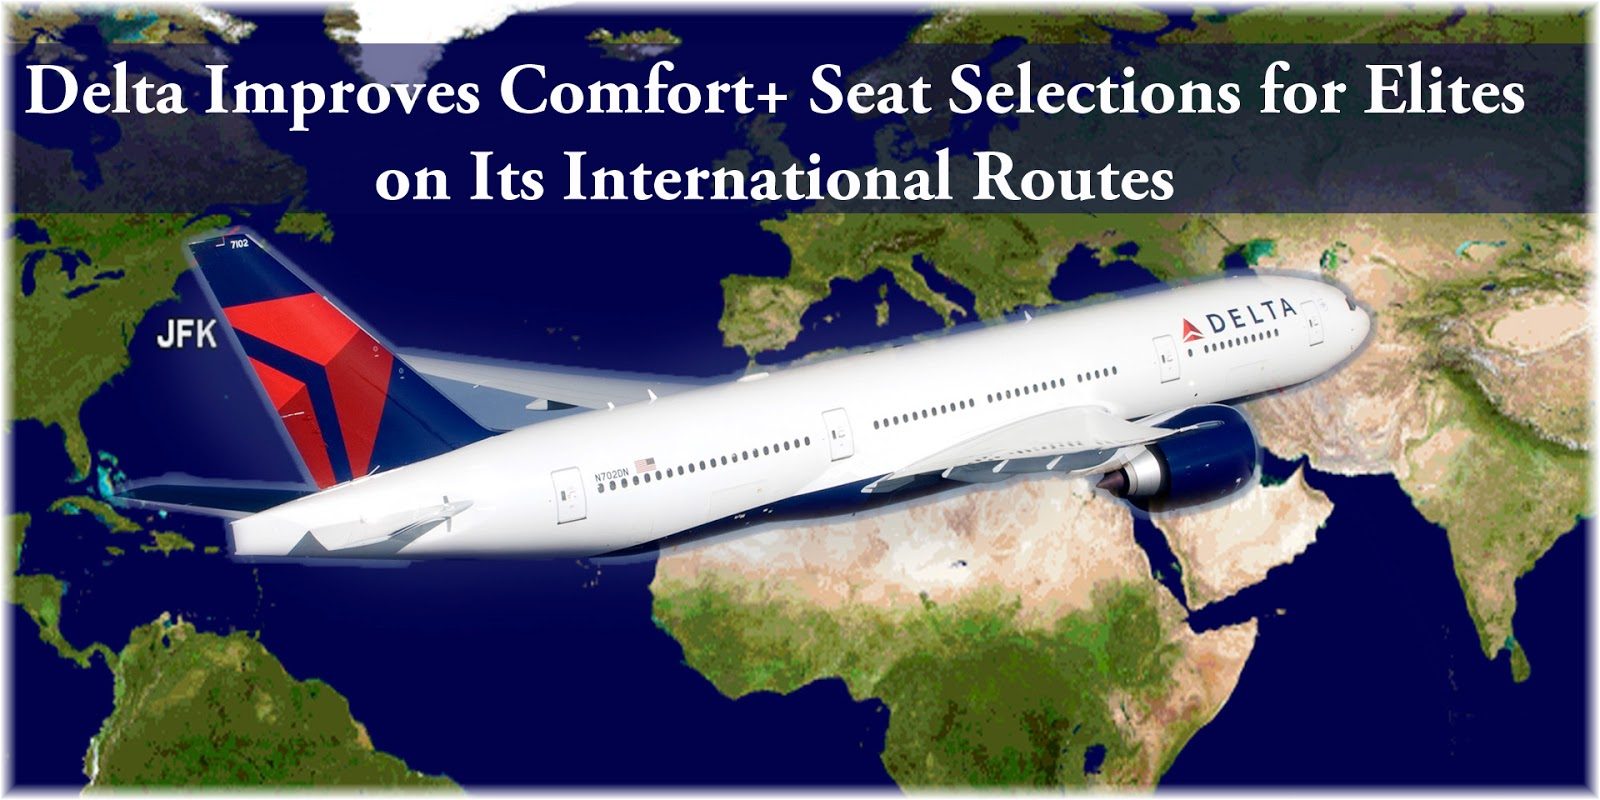 policy on more delta international routes improving access to comfort comfortplus seats